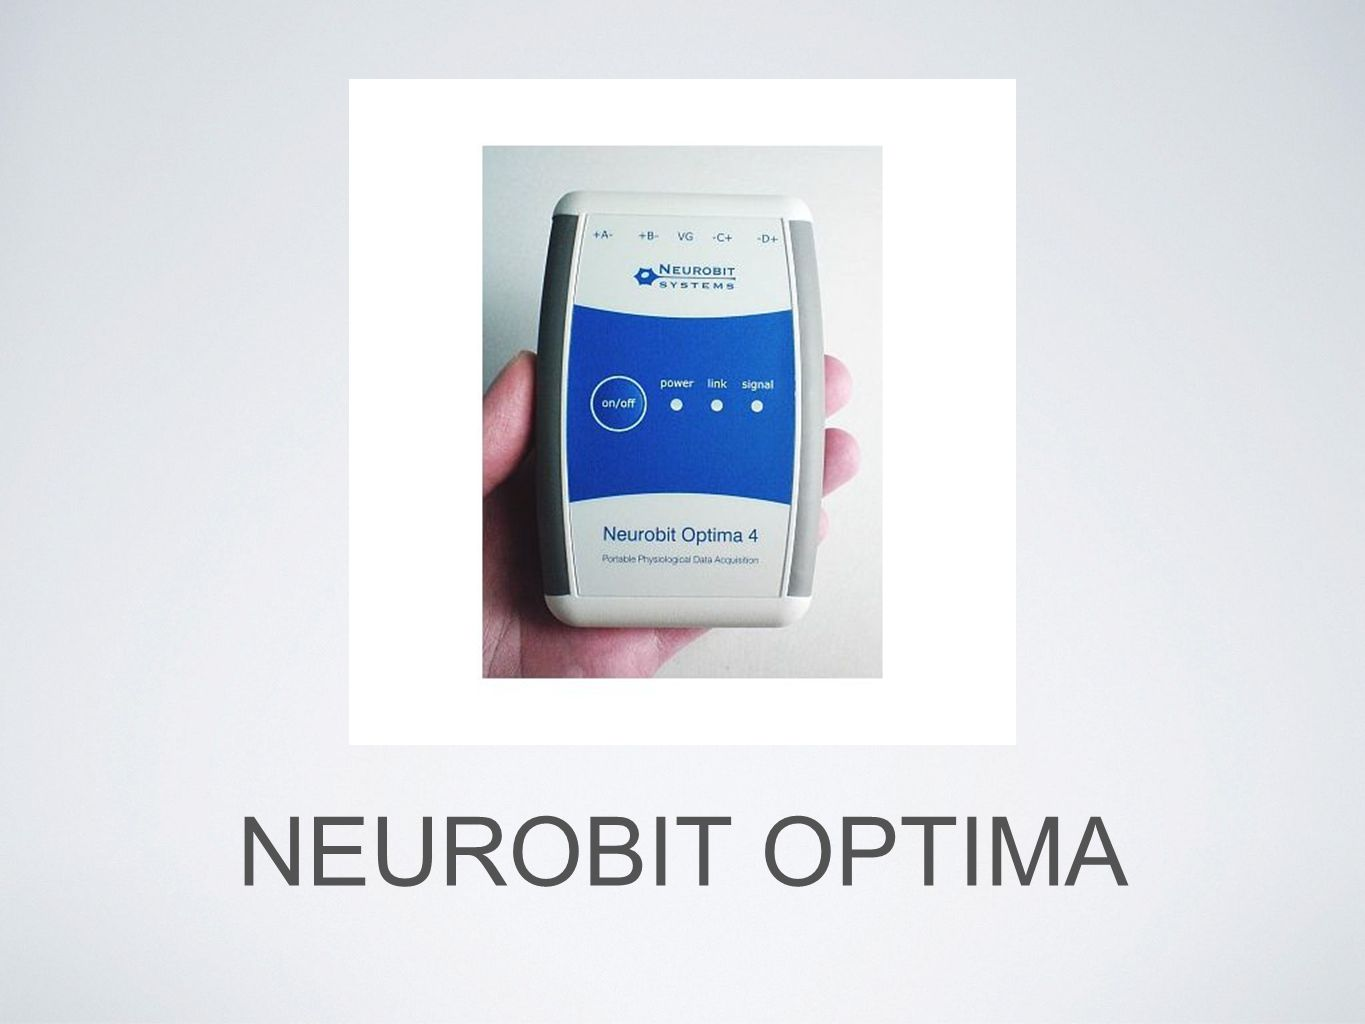 NEUROBIT OPTIMA